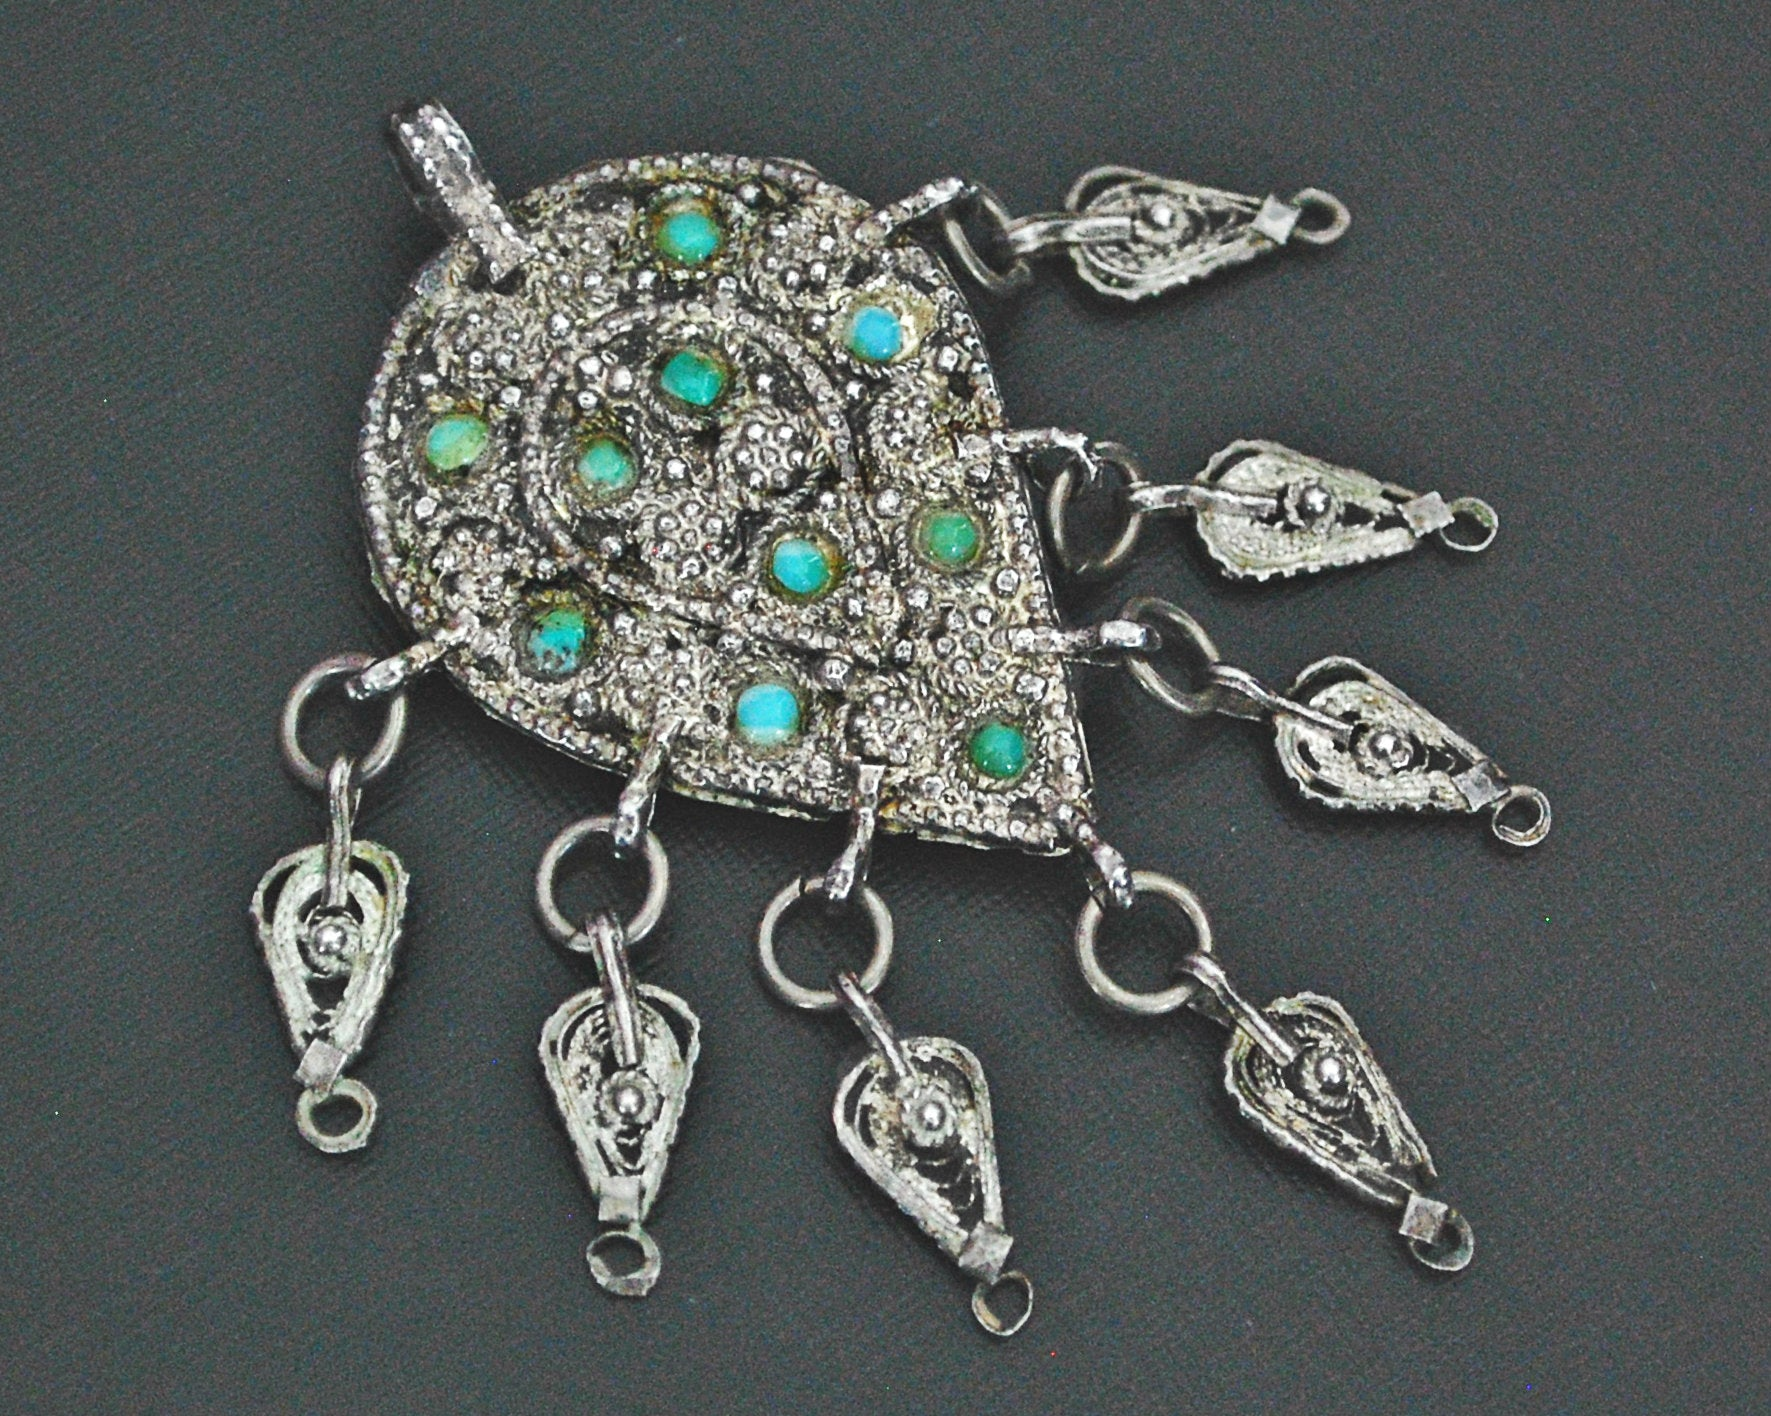 Yemeni Filigree Pendant Brooch with Turquoises